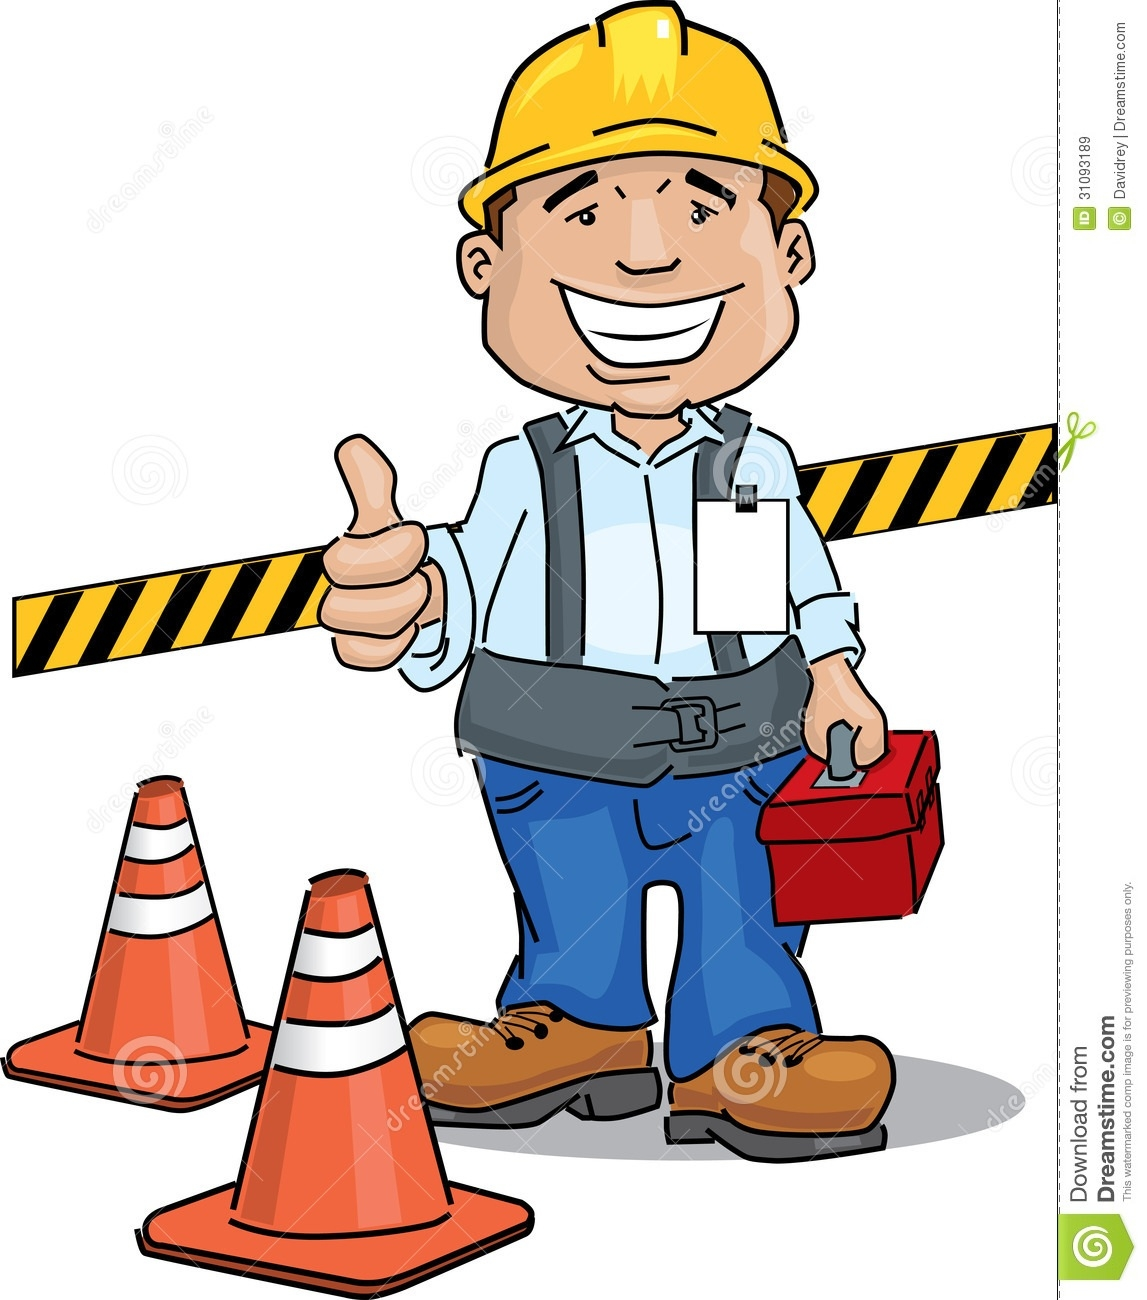 construction worker clipart at getdrawings com free for personal rh getdrawings com construction workers clip art cartoons clipart construction worker